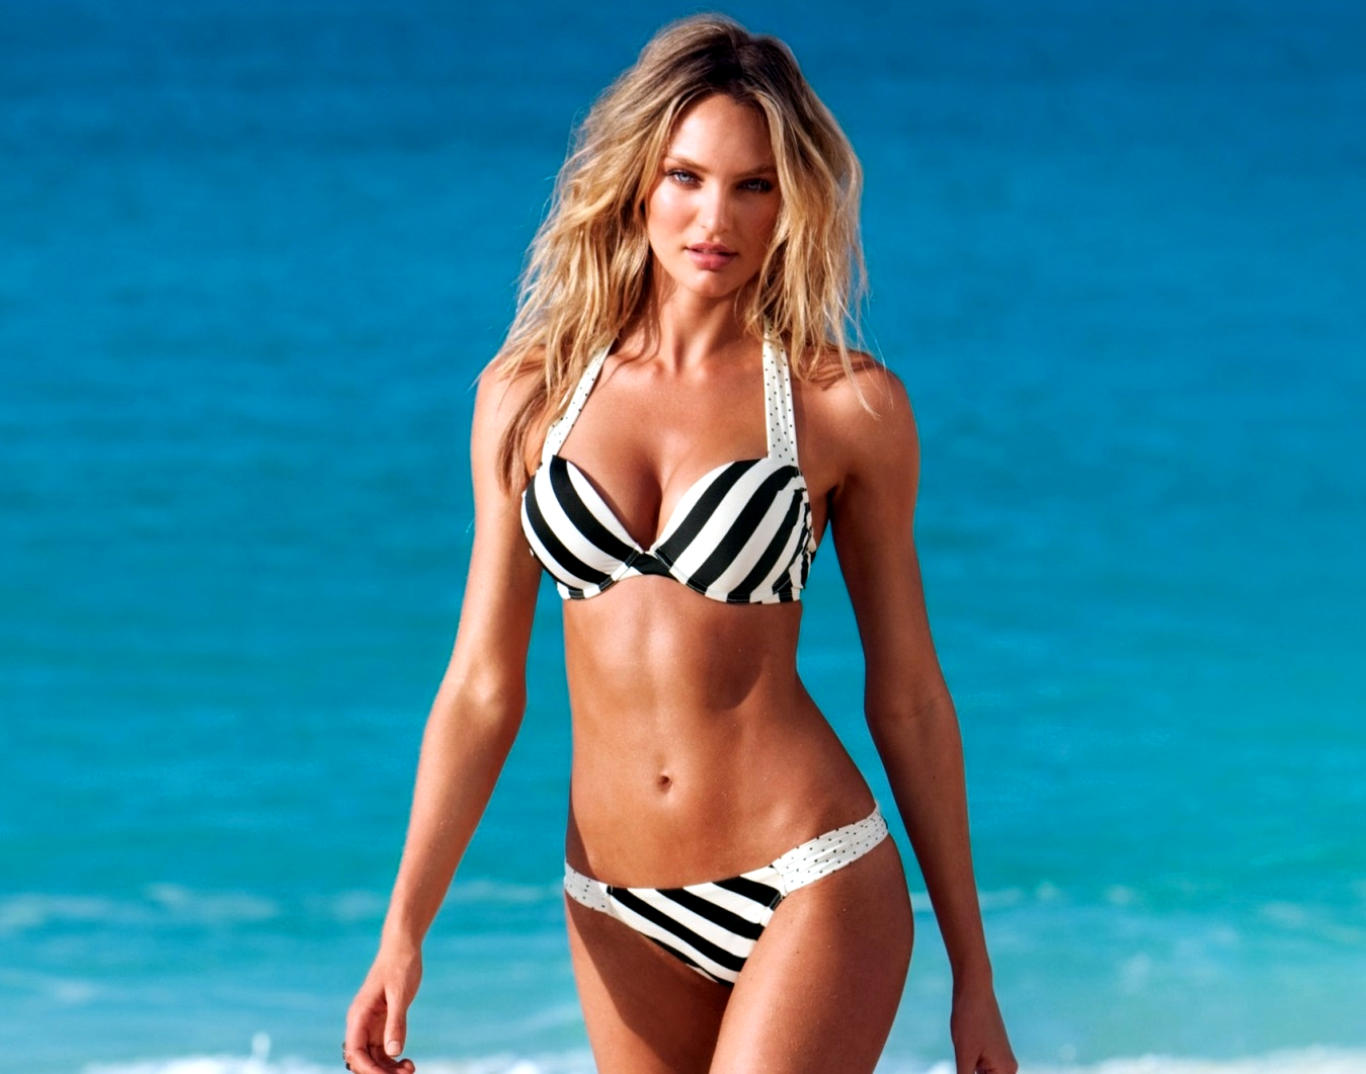 Candice Swanepoel Awesome Hot Wallpaper